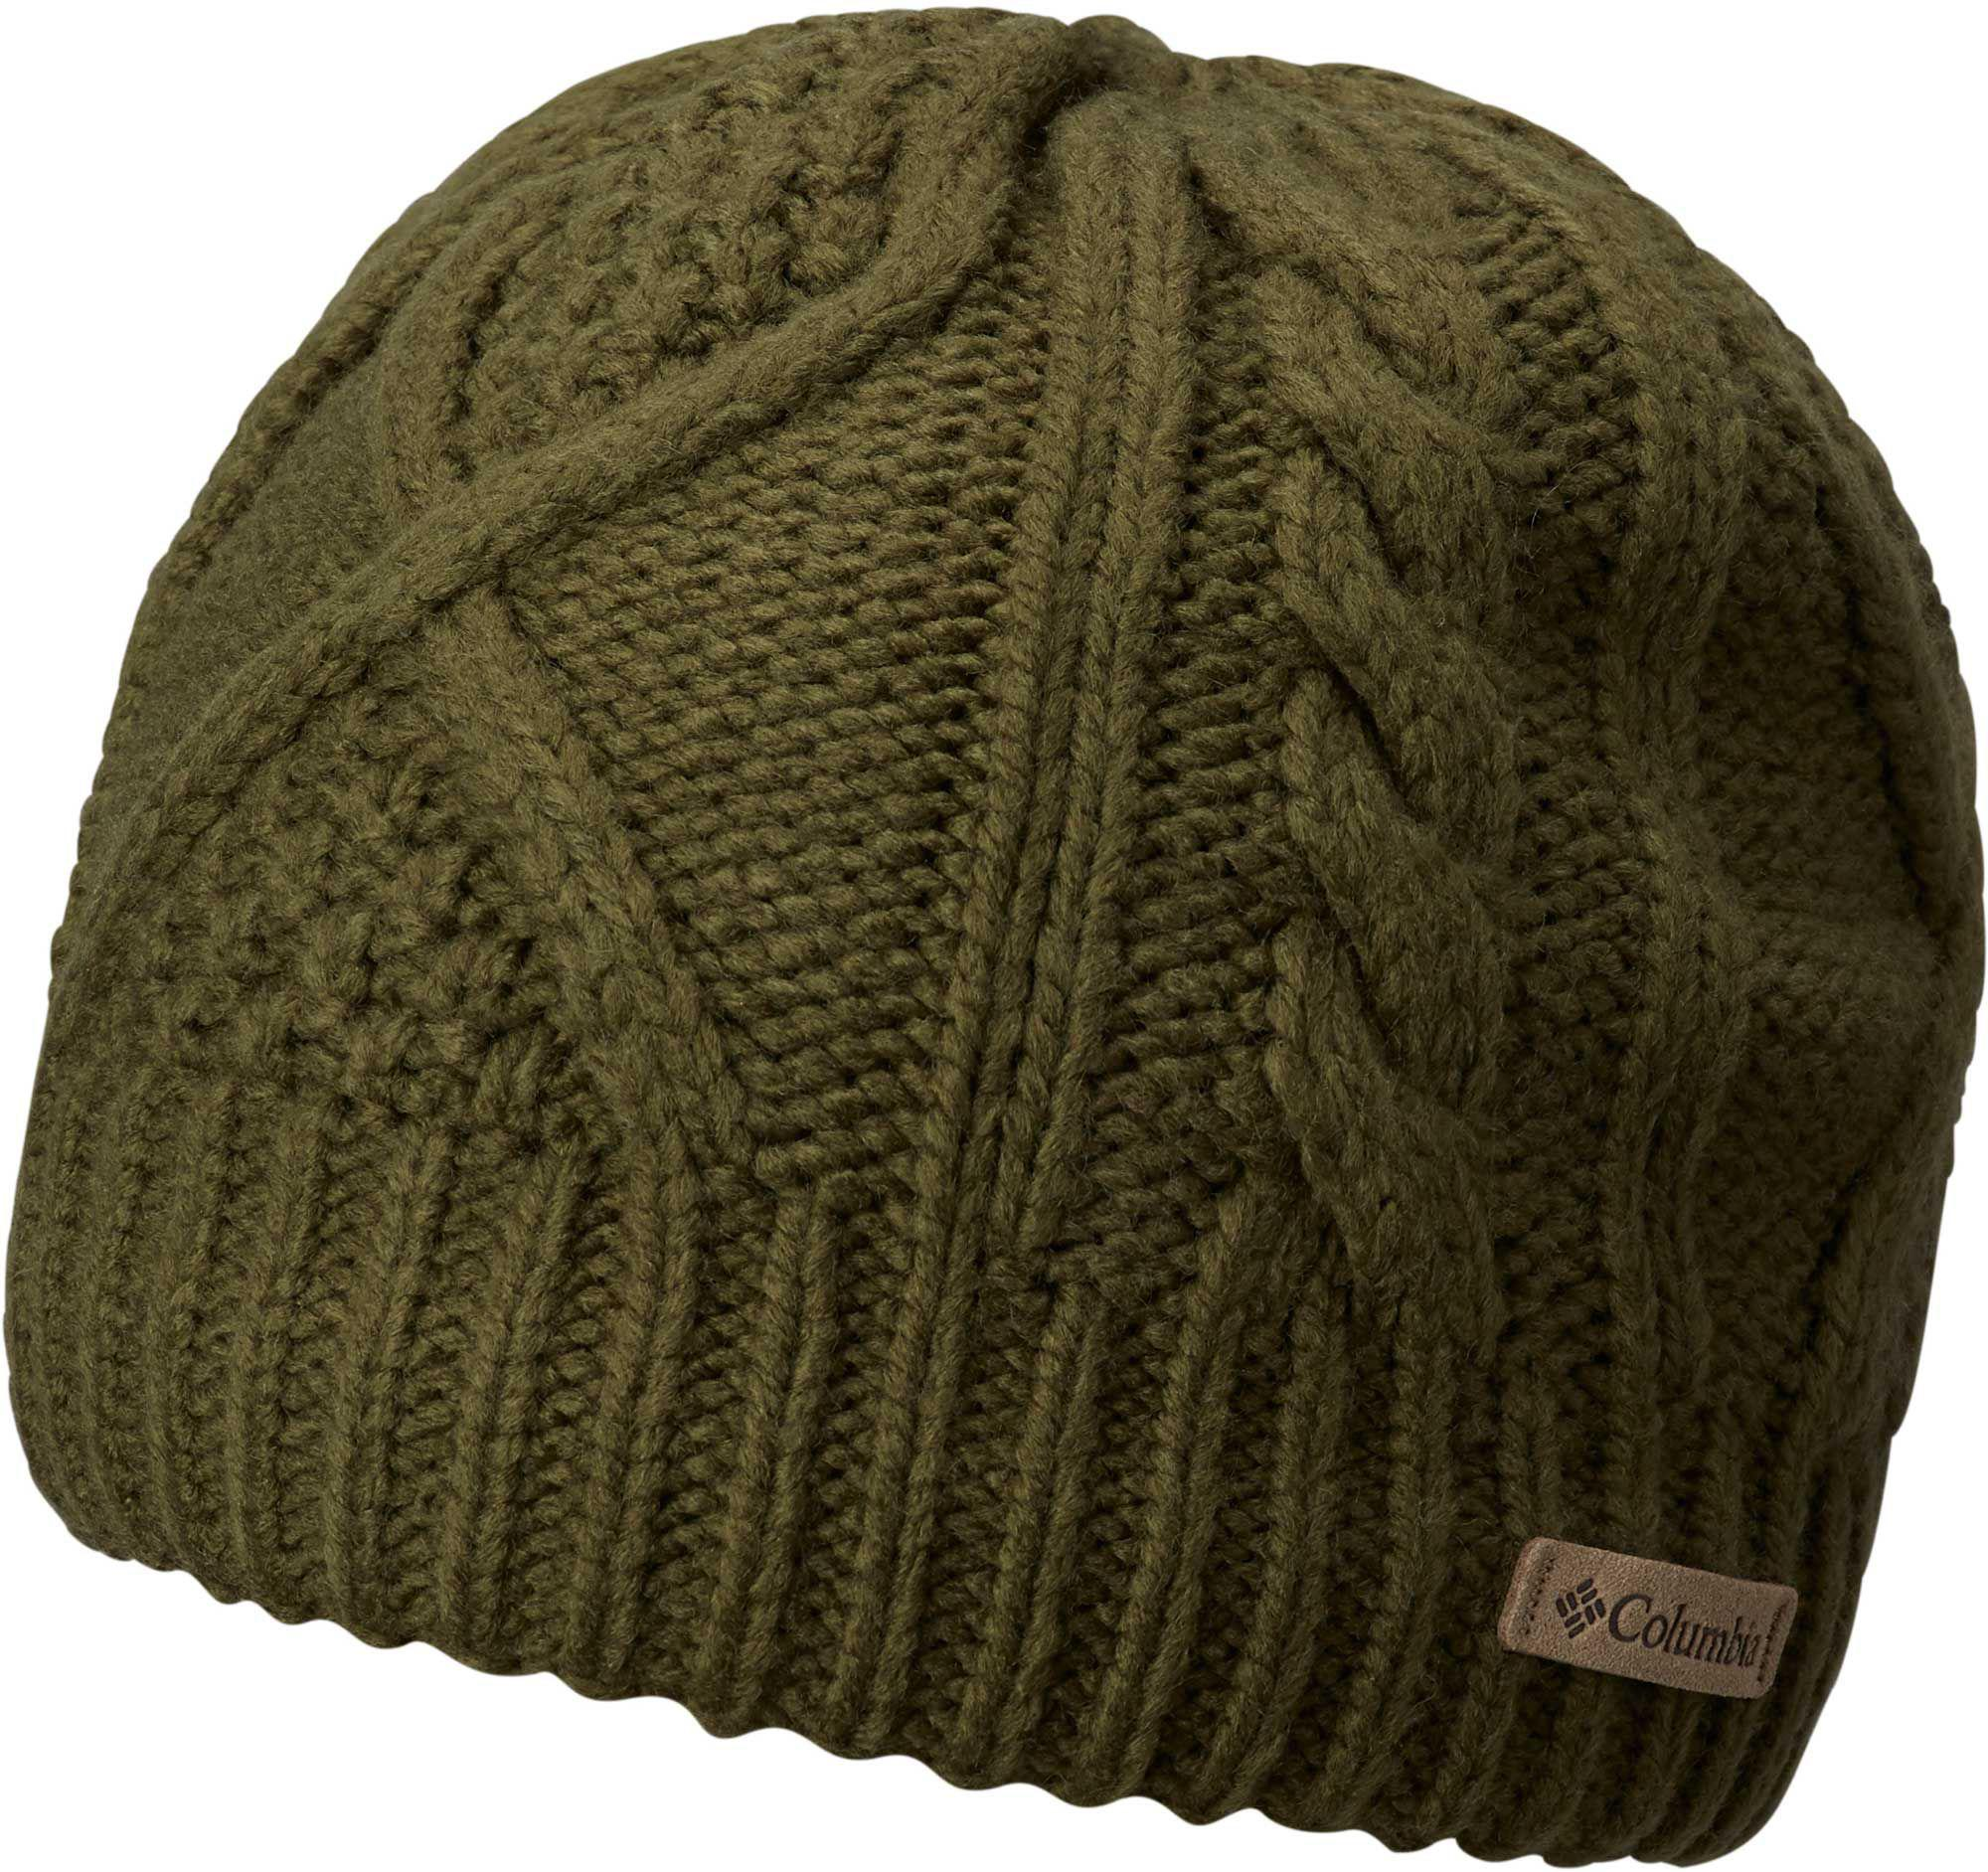 aed660d145c Columbia - Green Cabled Cutie Beanie - Lyst. View fullscreen